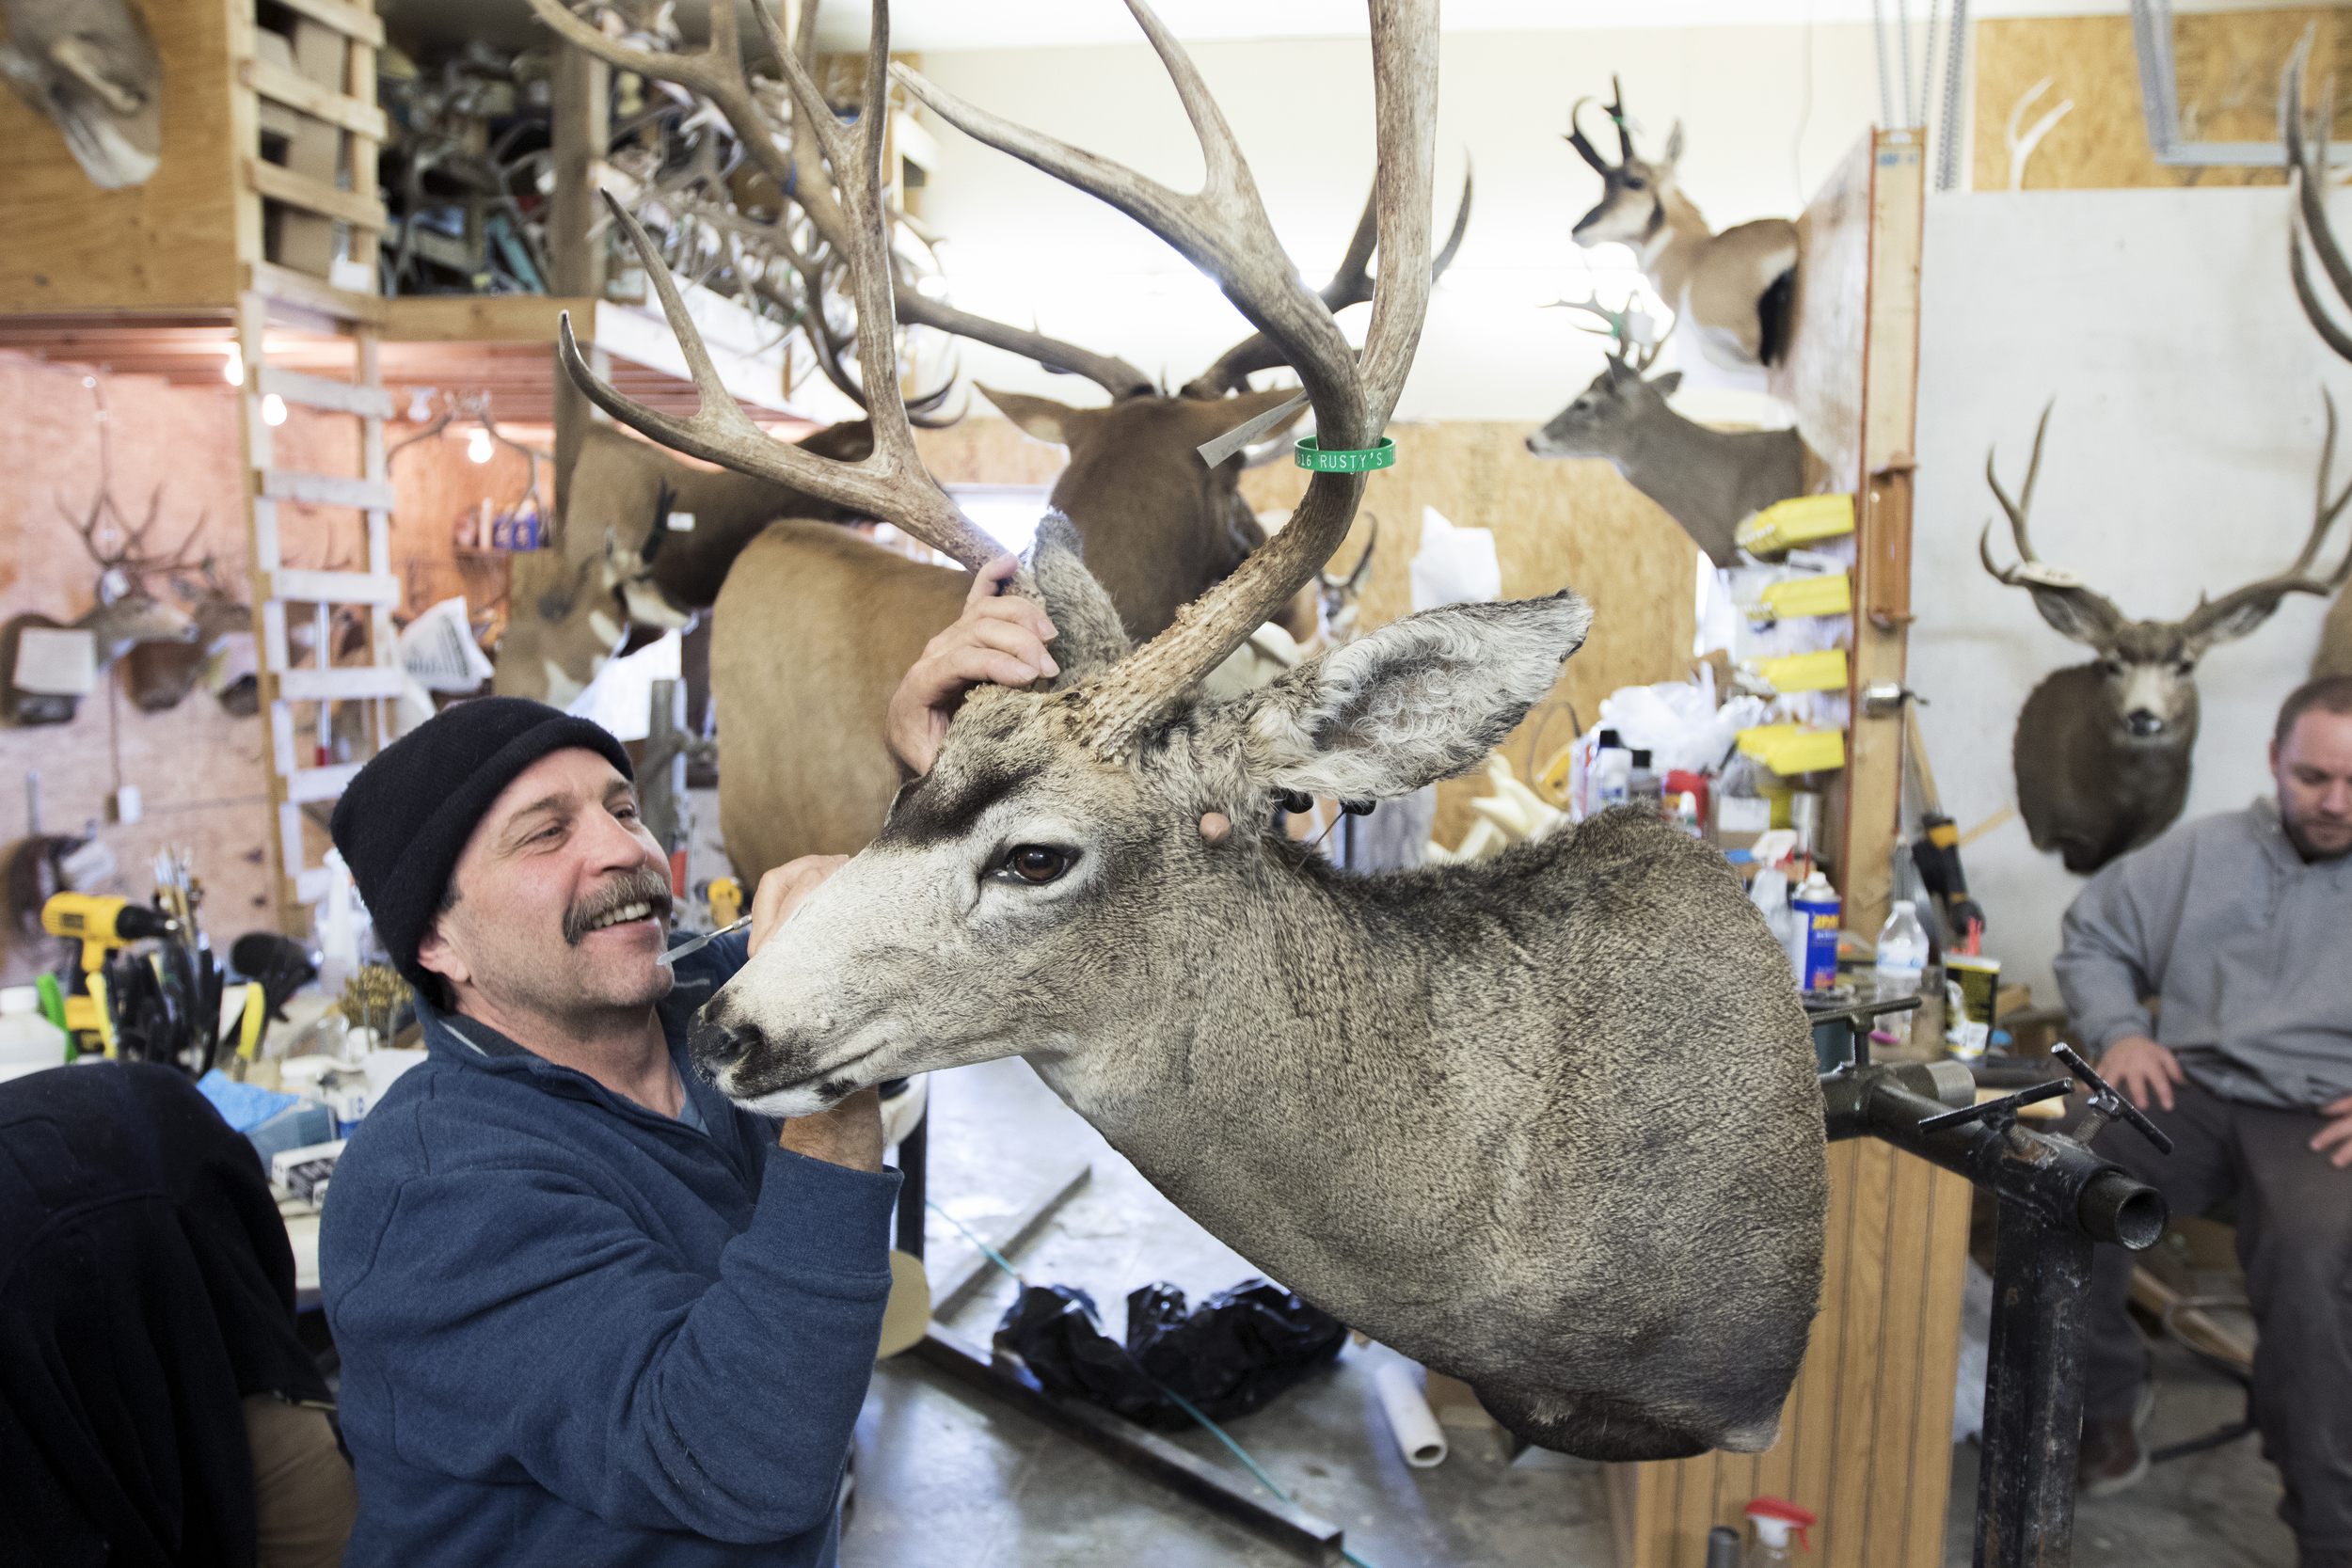 Brad Smith puts the finishing touches on a mule deer mount at Rusty's Taxidermy on April 1. The Western Regional Taxidermy Championship will be in Gillette Wednesday through Sunday at the Cam-plex Wyoming Center.